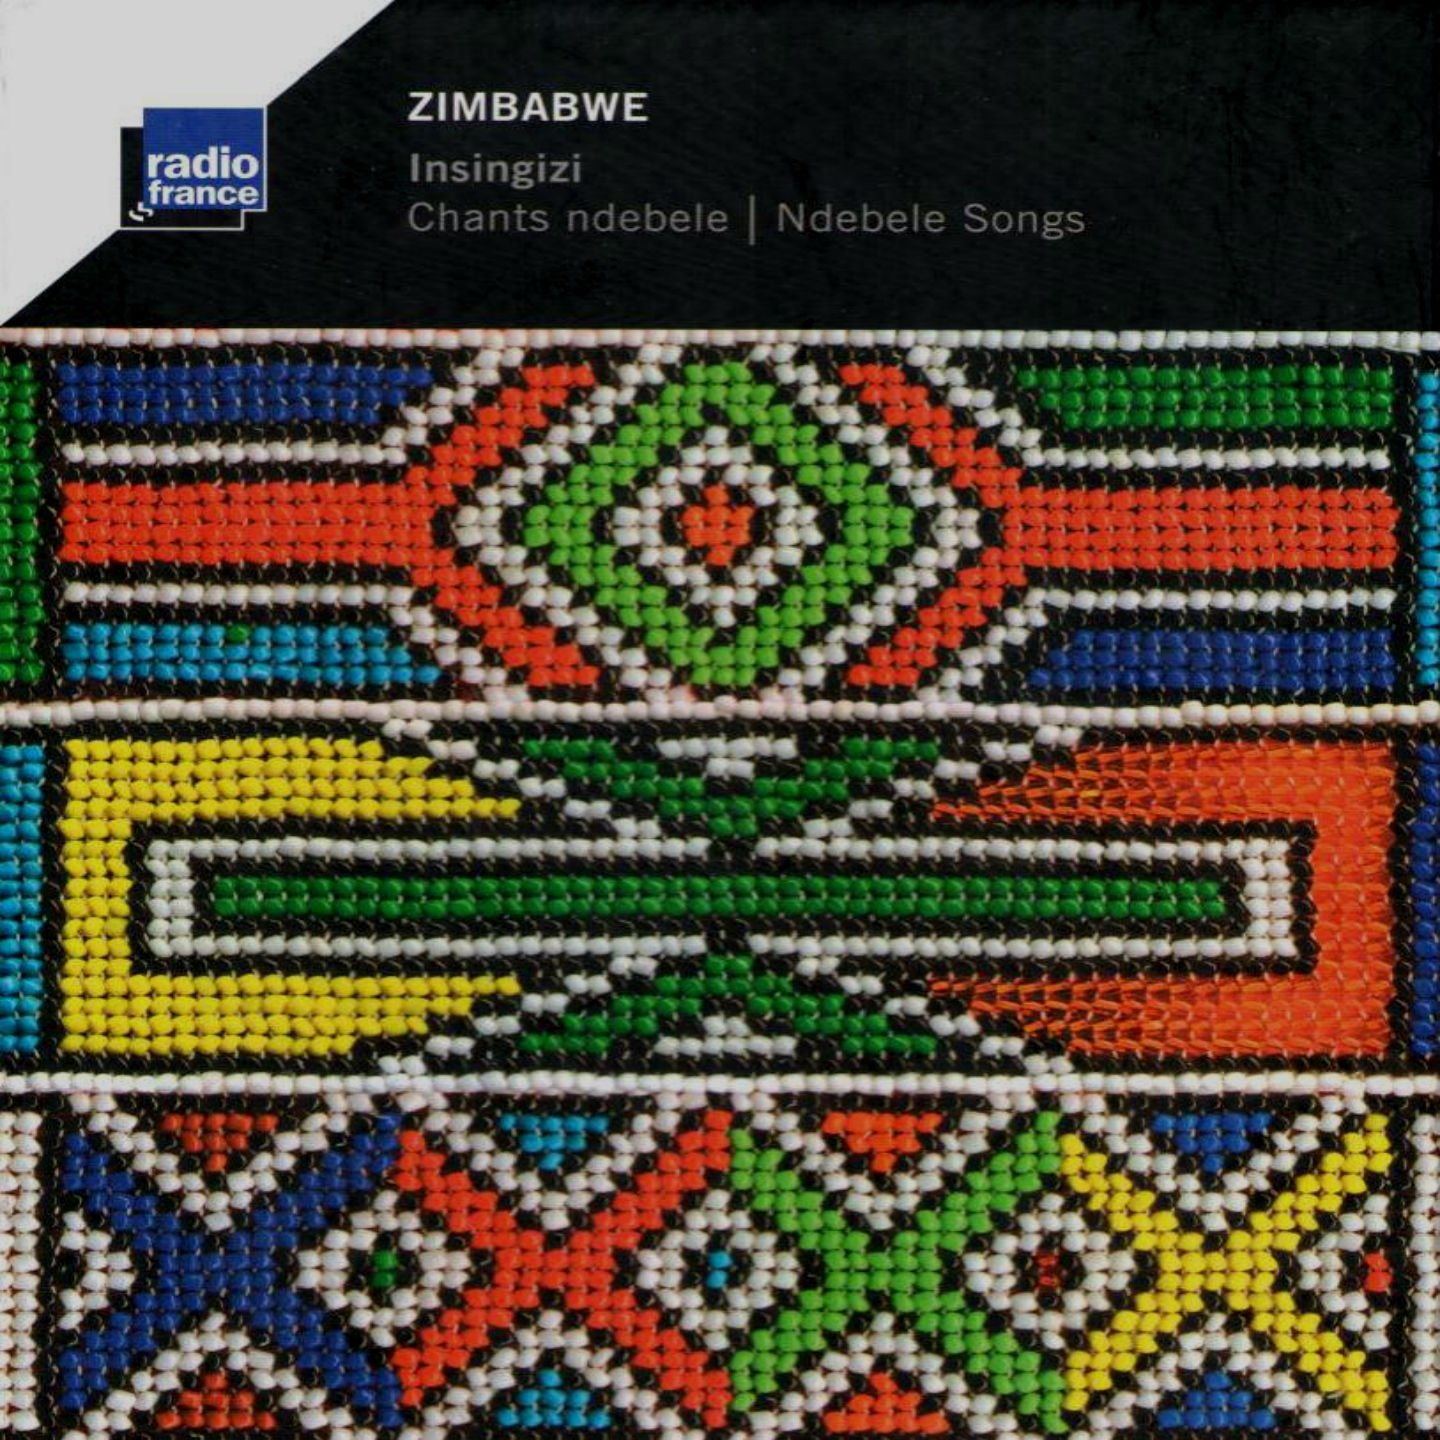 Zimbabwe: Chants ndebele (Ndebele songs) by Ocora Radio-France